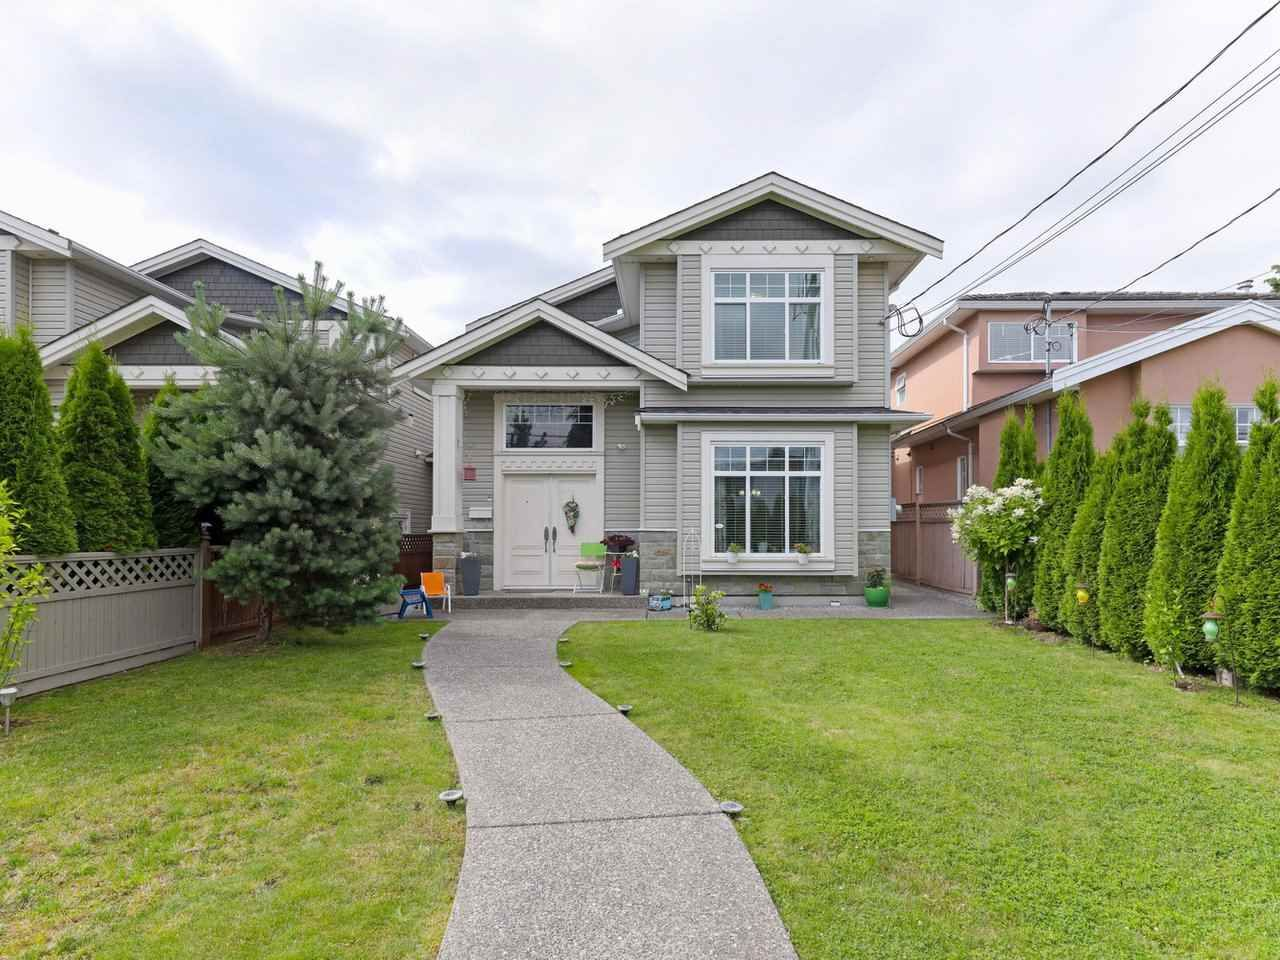 Main Photo: 7115 10TH Avenue in Burnaby: Edmonds BE 1/2 Duplex for sale (Burnaby East)  : MLS®# R2480070